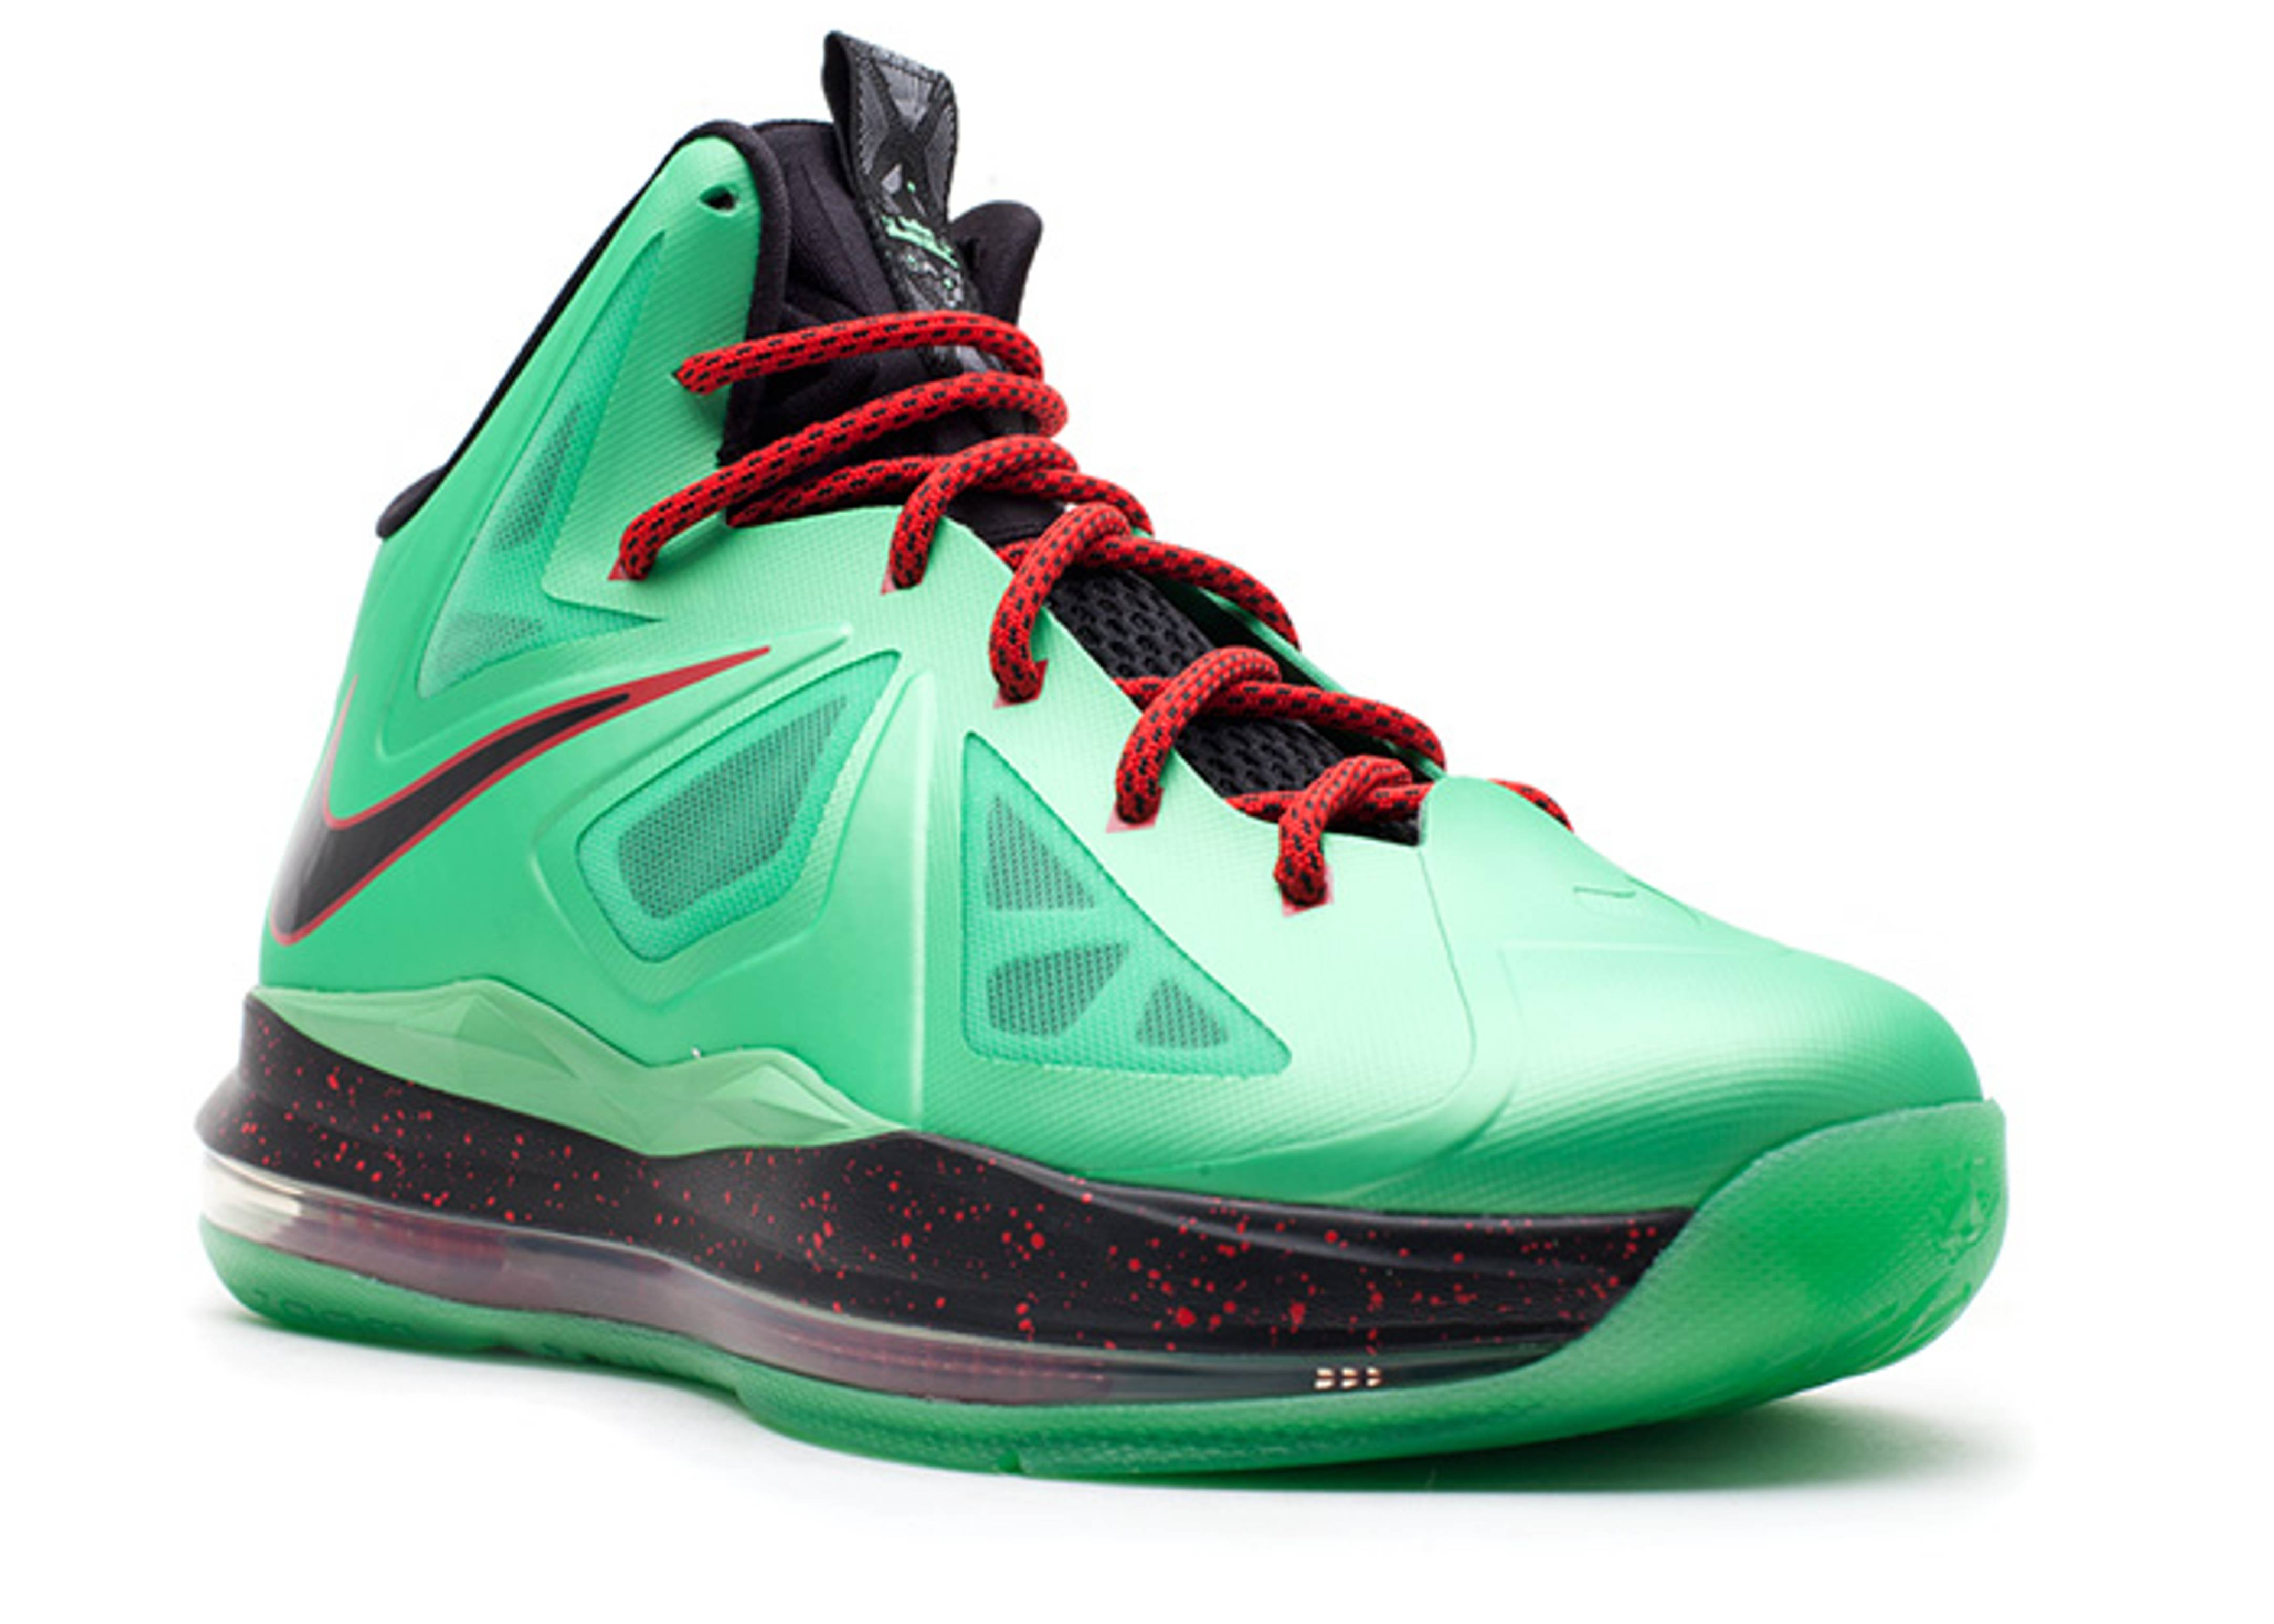 sale retailer 5e094 f726e Authentic Nike Lebron 10 Cutting Jade Blue Red Black   Phoenix Managed  Networks